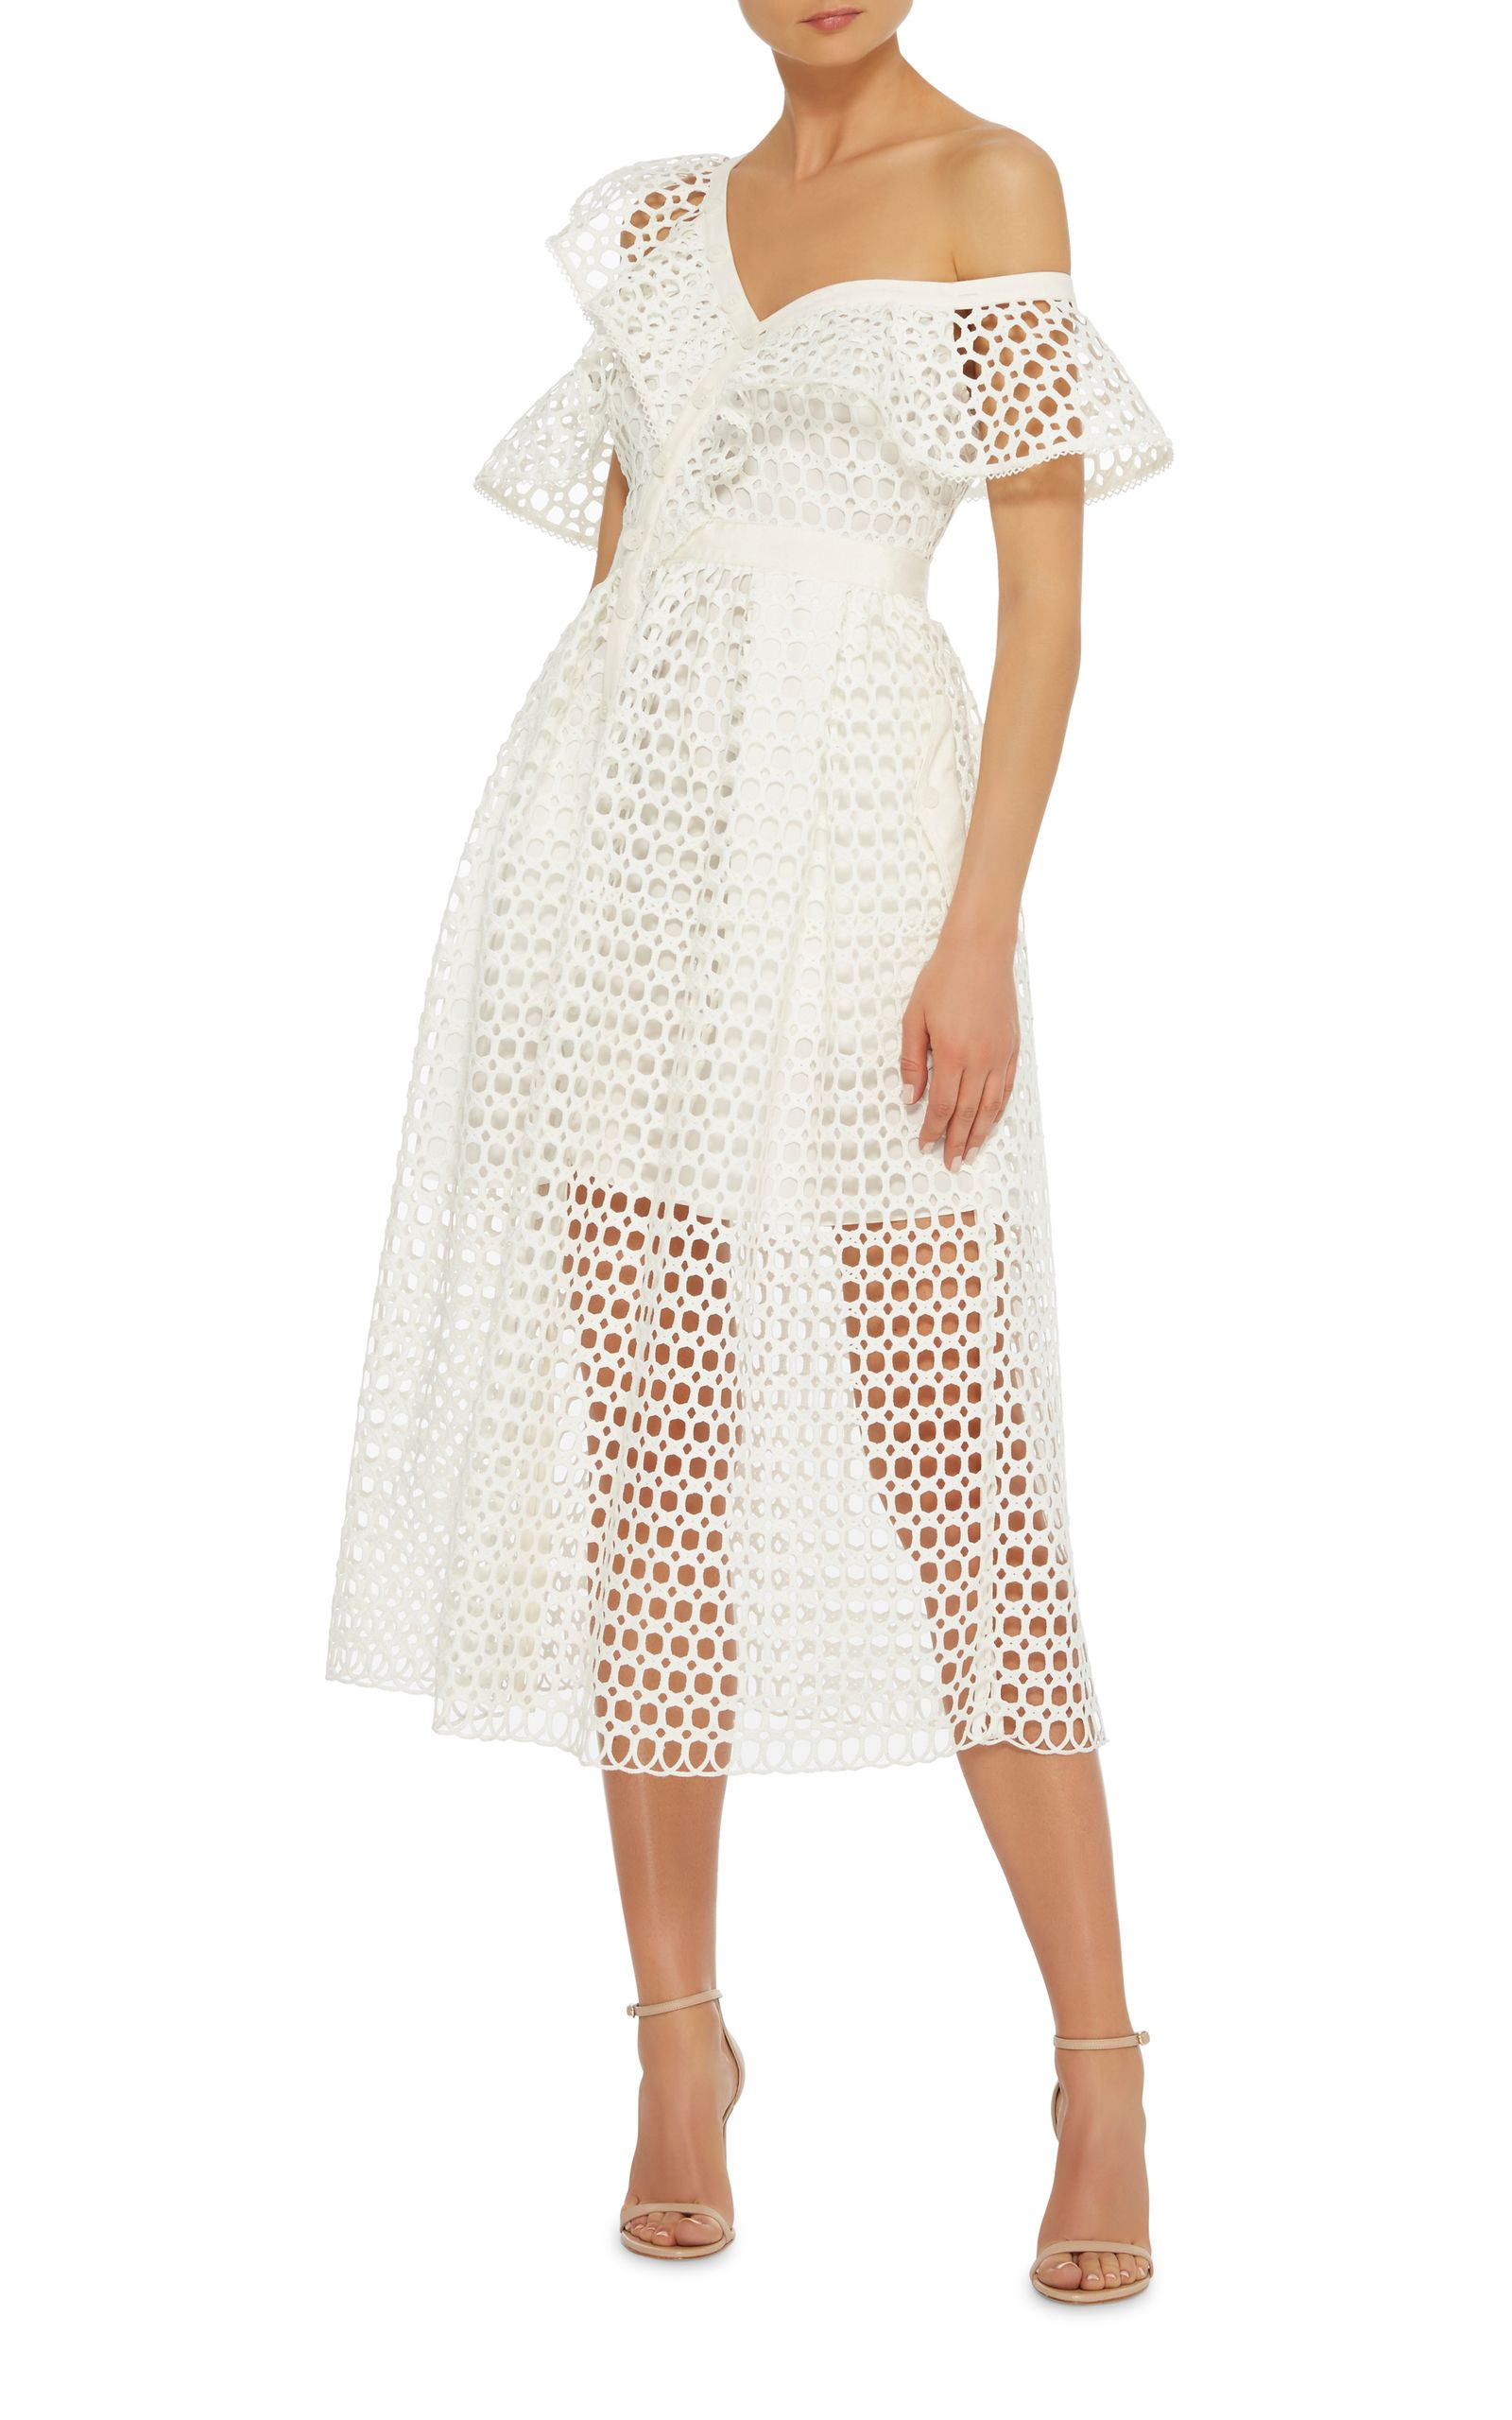 polka dot one shoulder dress - White Self Portrait Clearance Online Discount Pictures Ebay Cheap Online A8KjRy